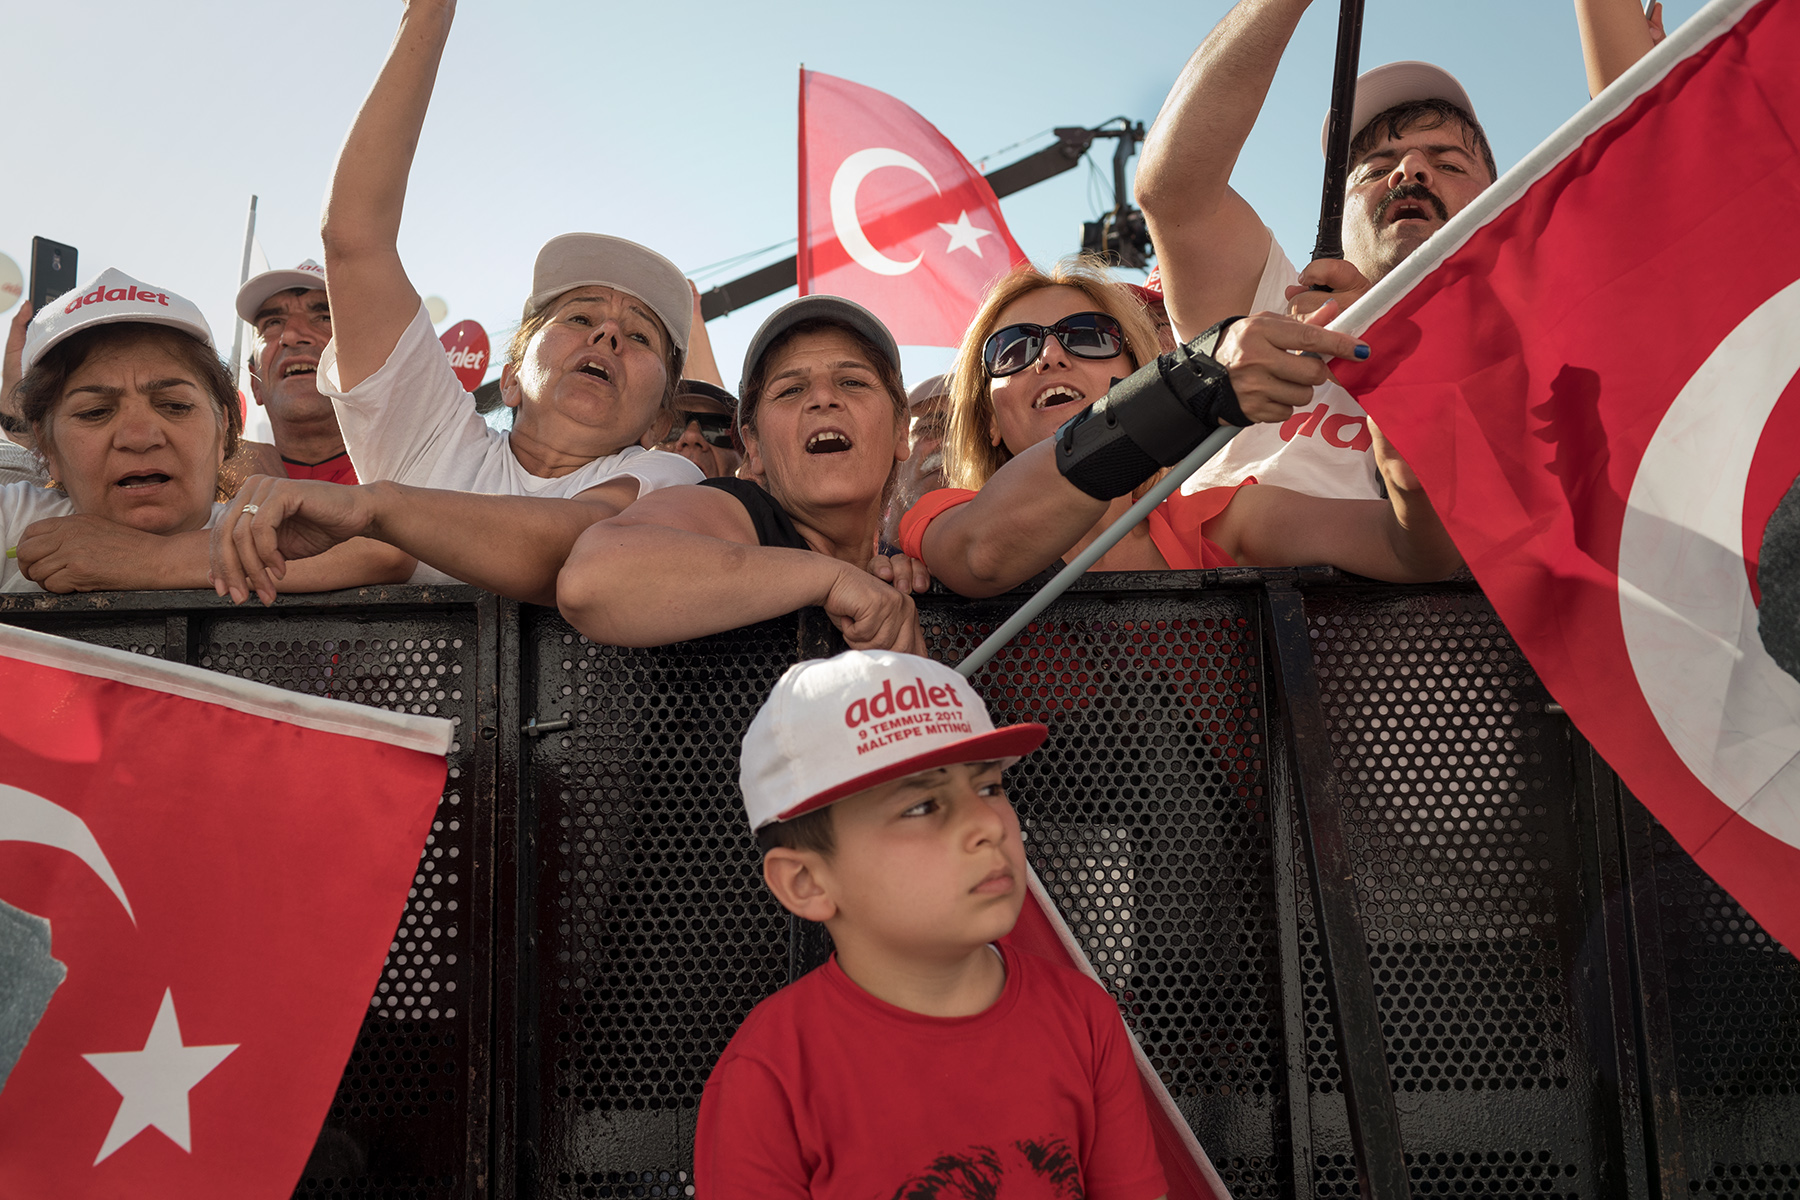 Supporters attend Turkey's main opposition Republican People Party (CHP) leader Kemal Kilicdaroglu 'Justice Rally' in Istanbul, Turkey, Sunday, July 9, 2017. The event concludes Kilicdaroglu's 25 days March from Ankara to Istanbul for accusing Erdogan of interference in court case of Enis Berberoglu, a CHP deputy who was sentenced to 25 years in jail for espionnage.